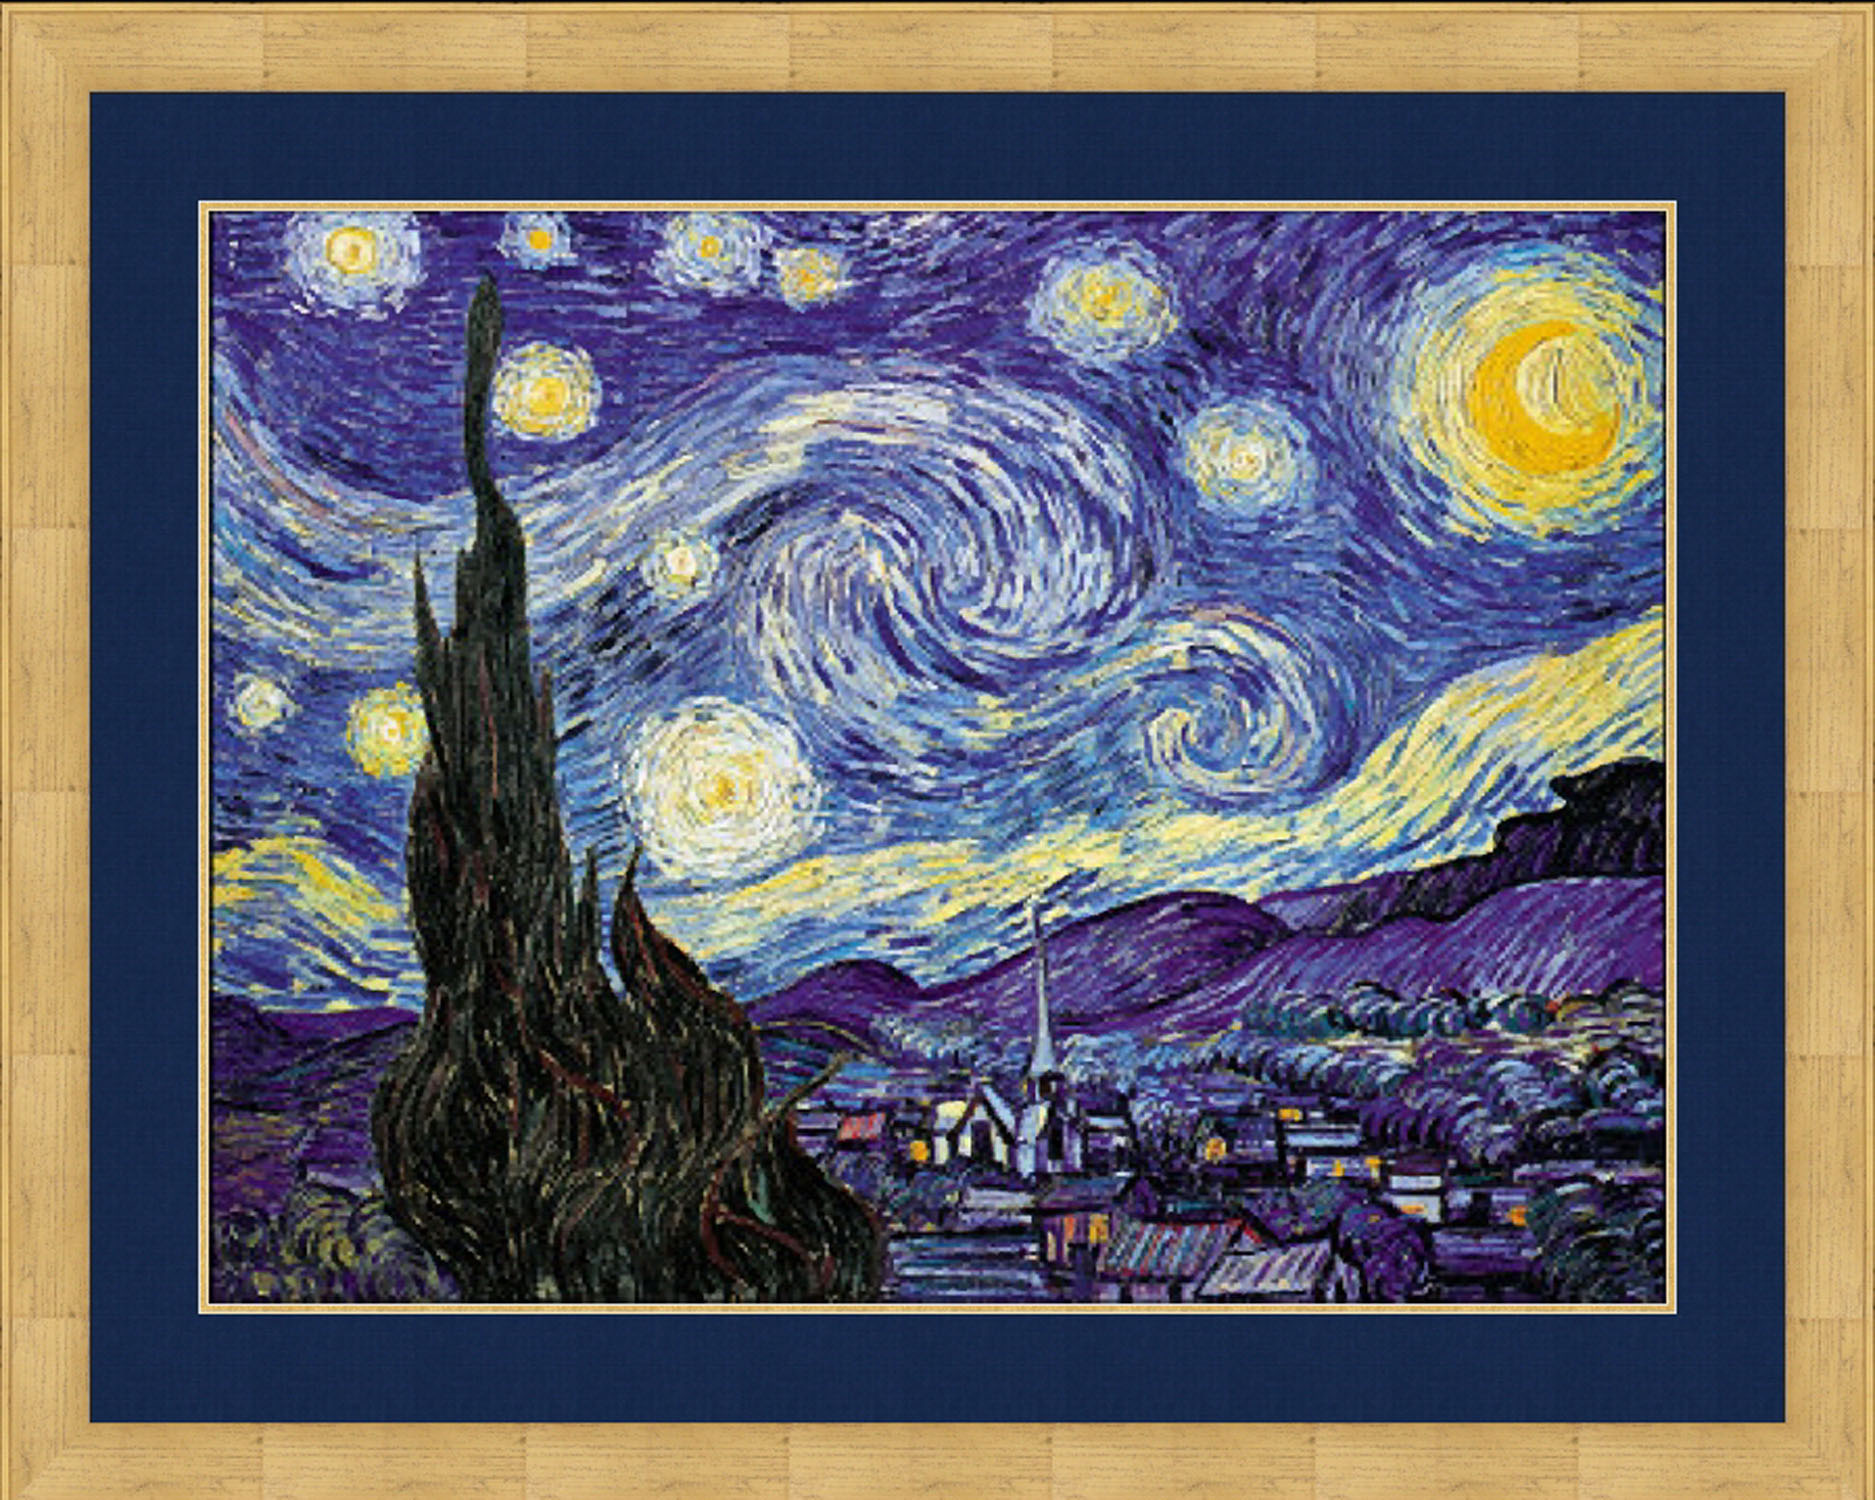 c7673194451b0980f2b8_starry_night_van_gogh.jpg